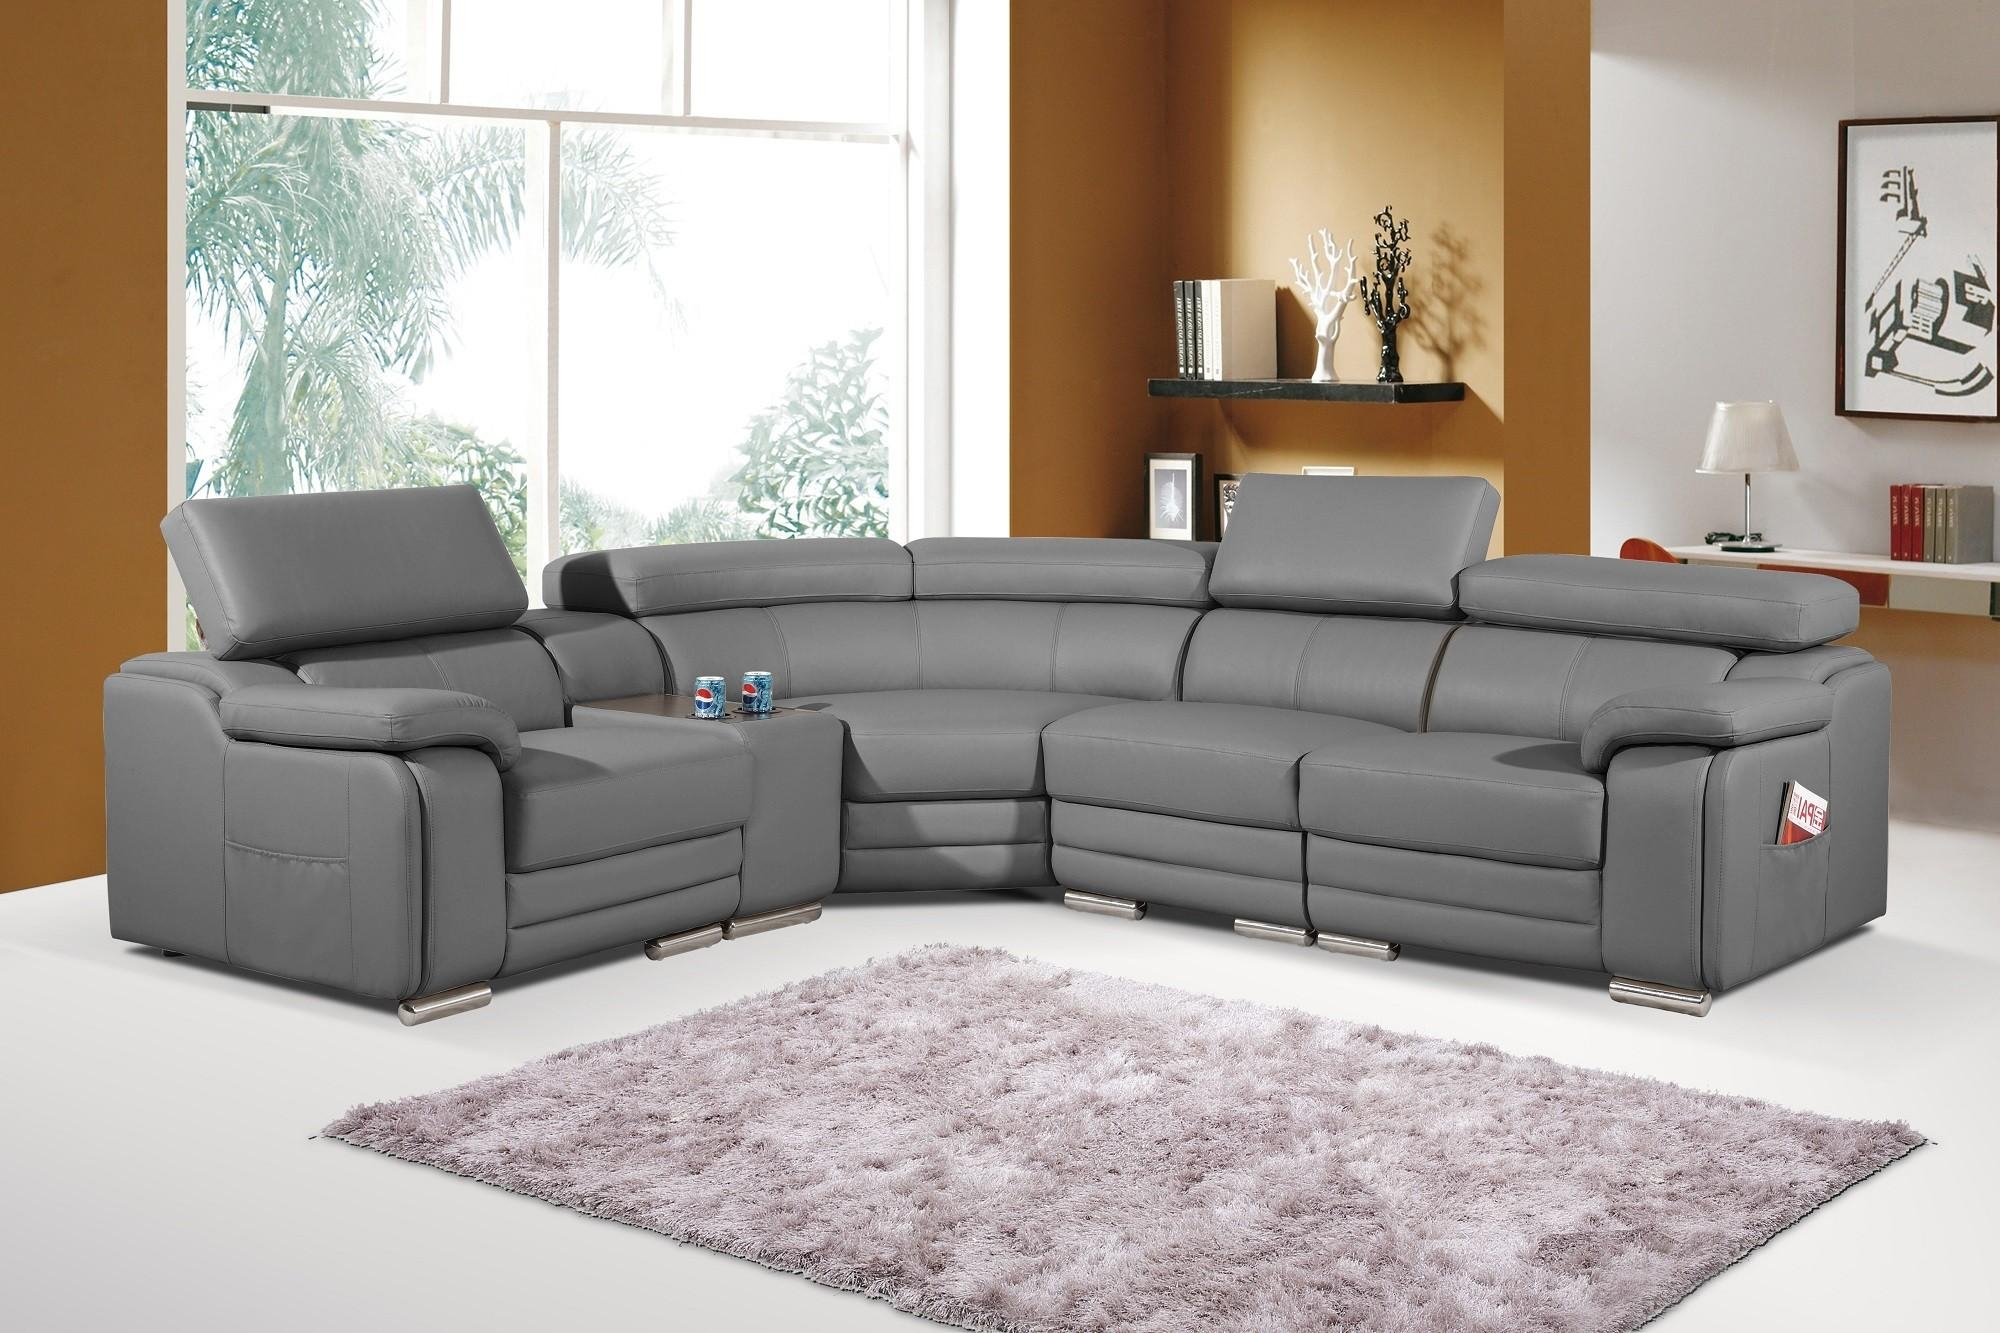 Dakota Stylist Modern Grey Leather Corner Sofa Left/hand In Corner Sofa Leather (View 4 of 20)